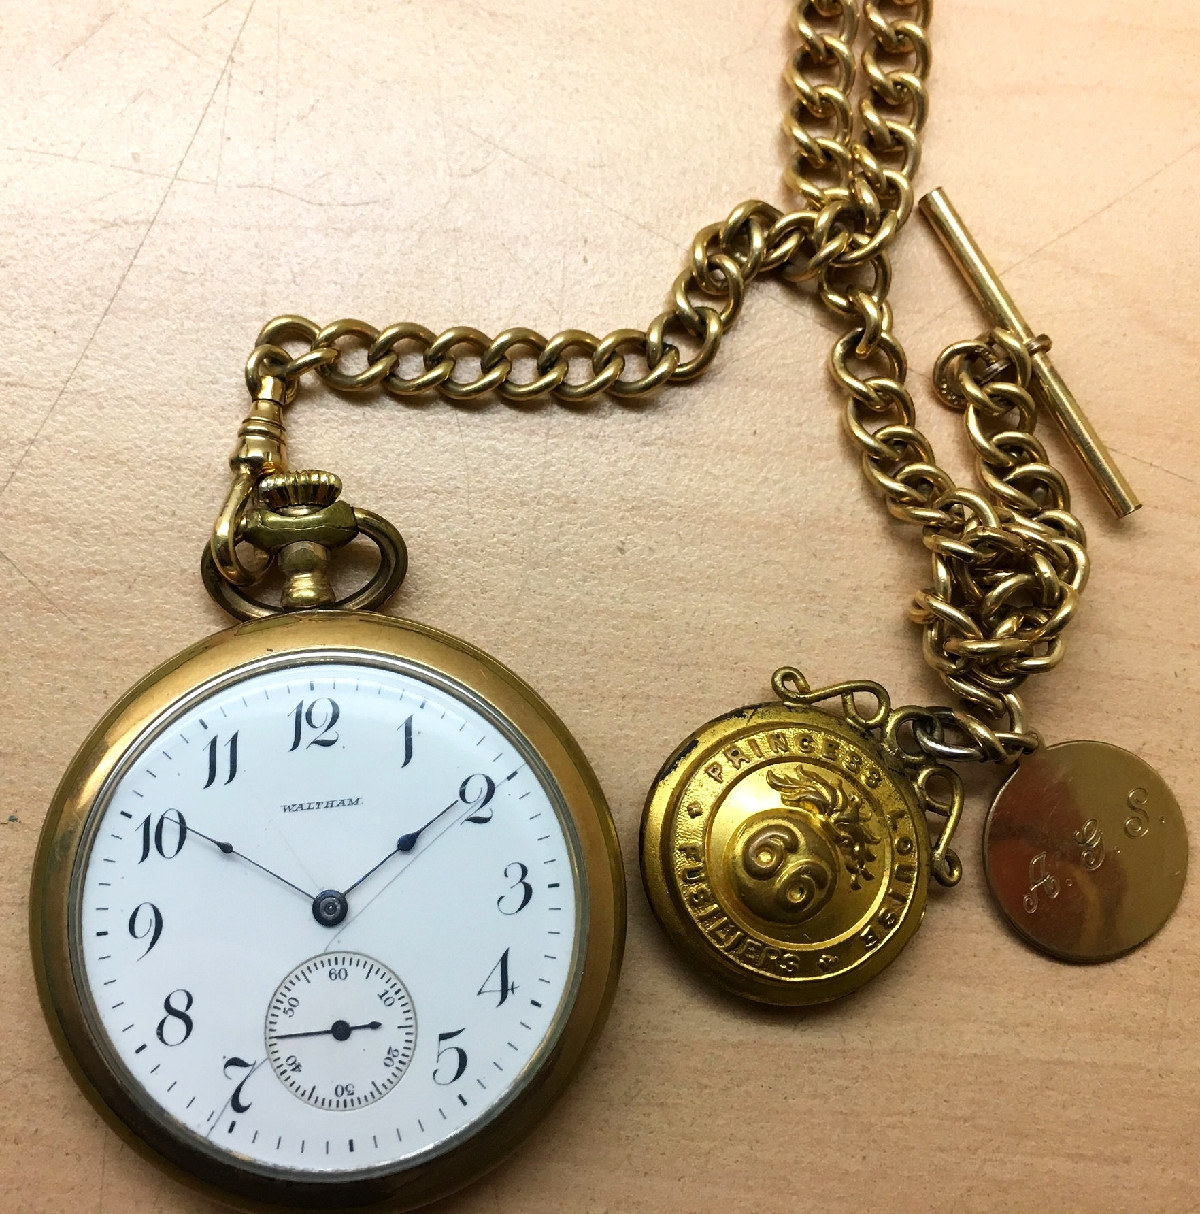 Waltham pocket watch once owned by a World War I veteran.. Credit Ross Dunn